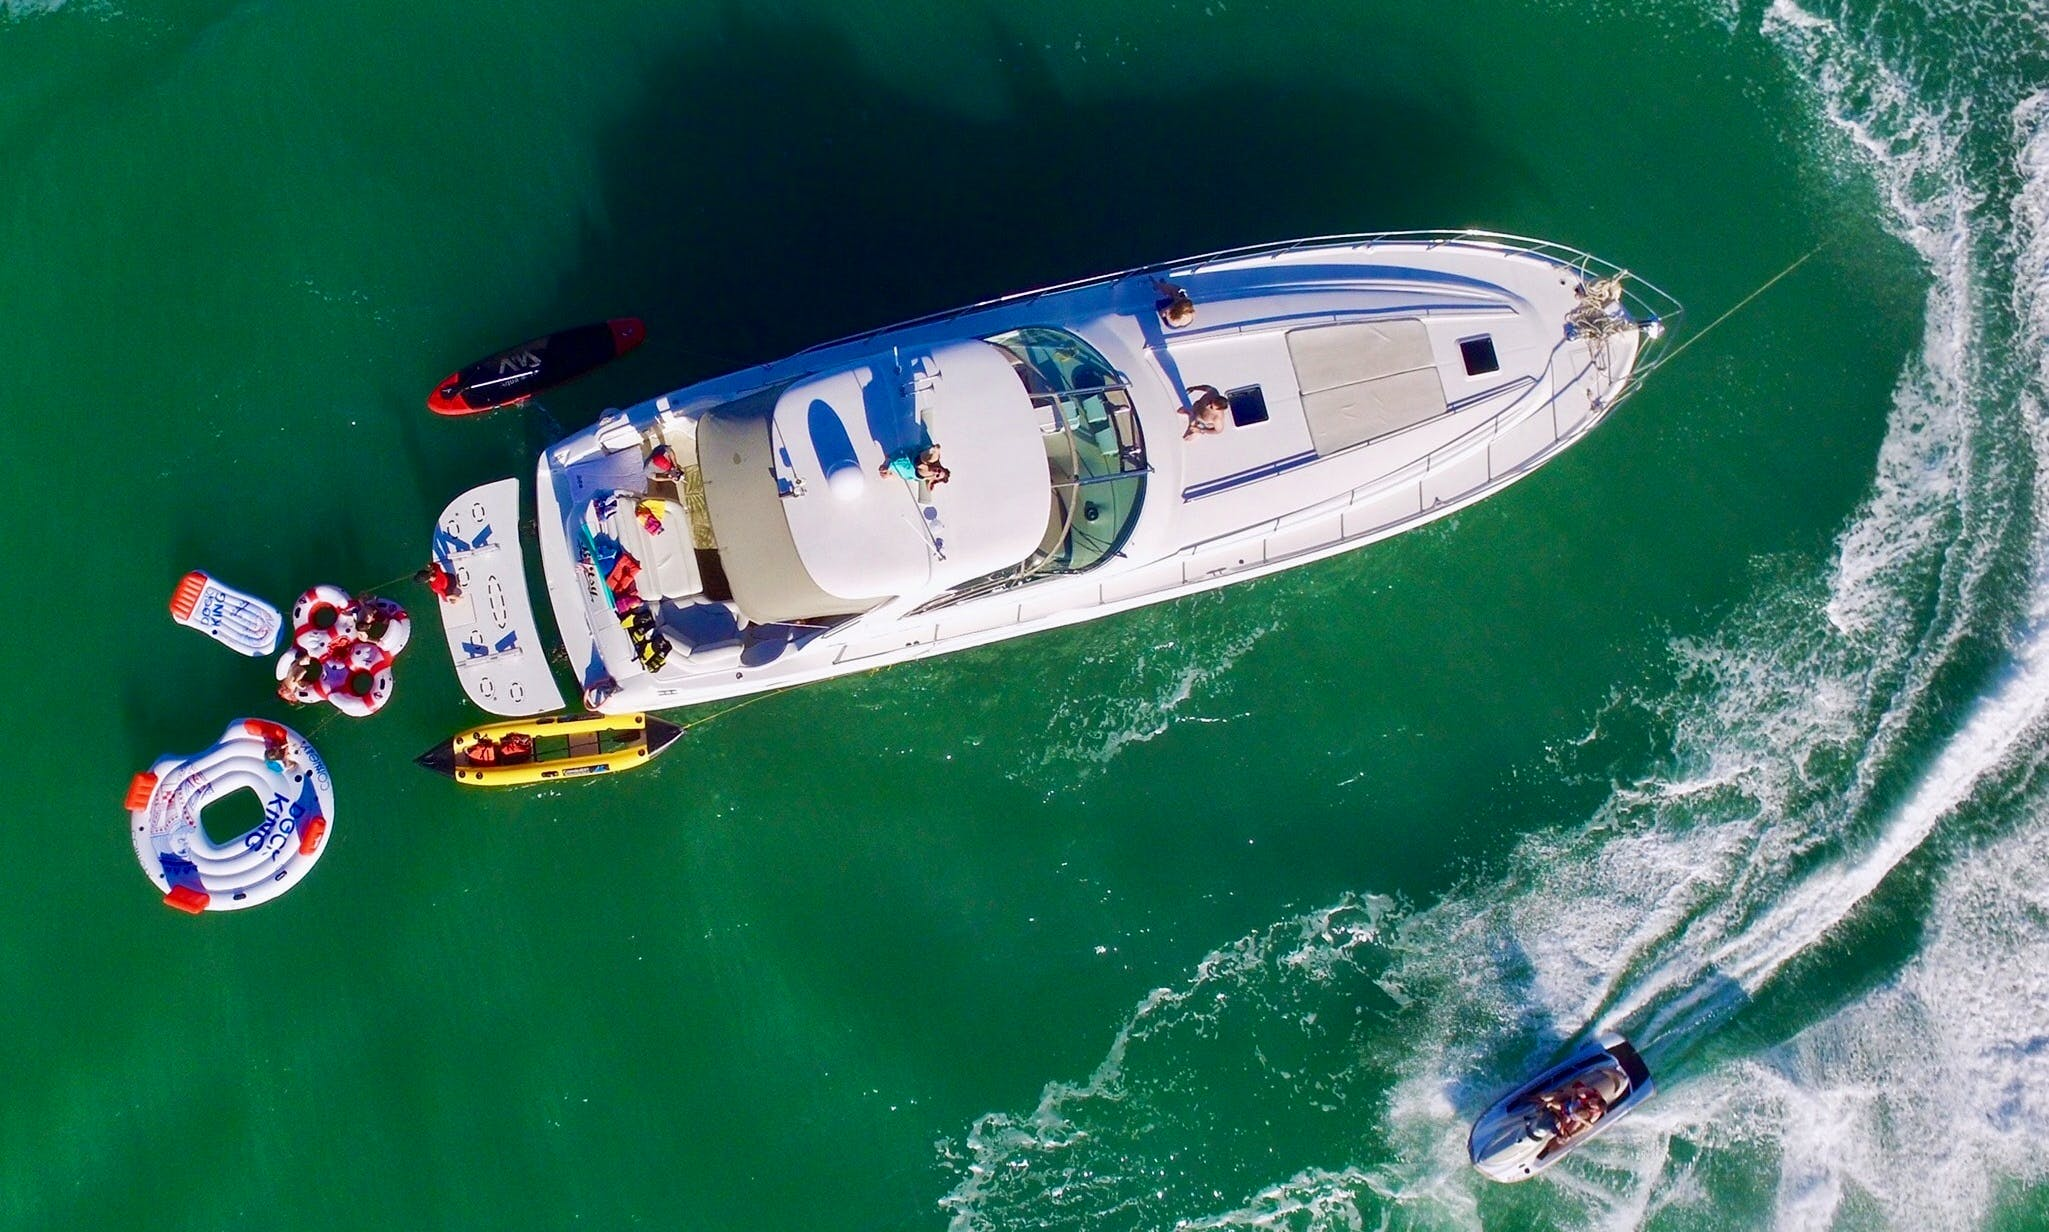 Rent a 55' Sea Ray Yacht in Miami for 12 People